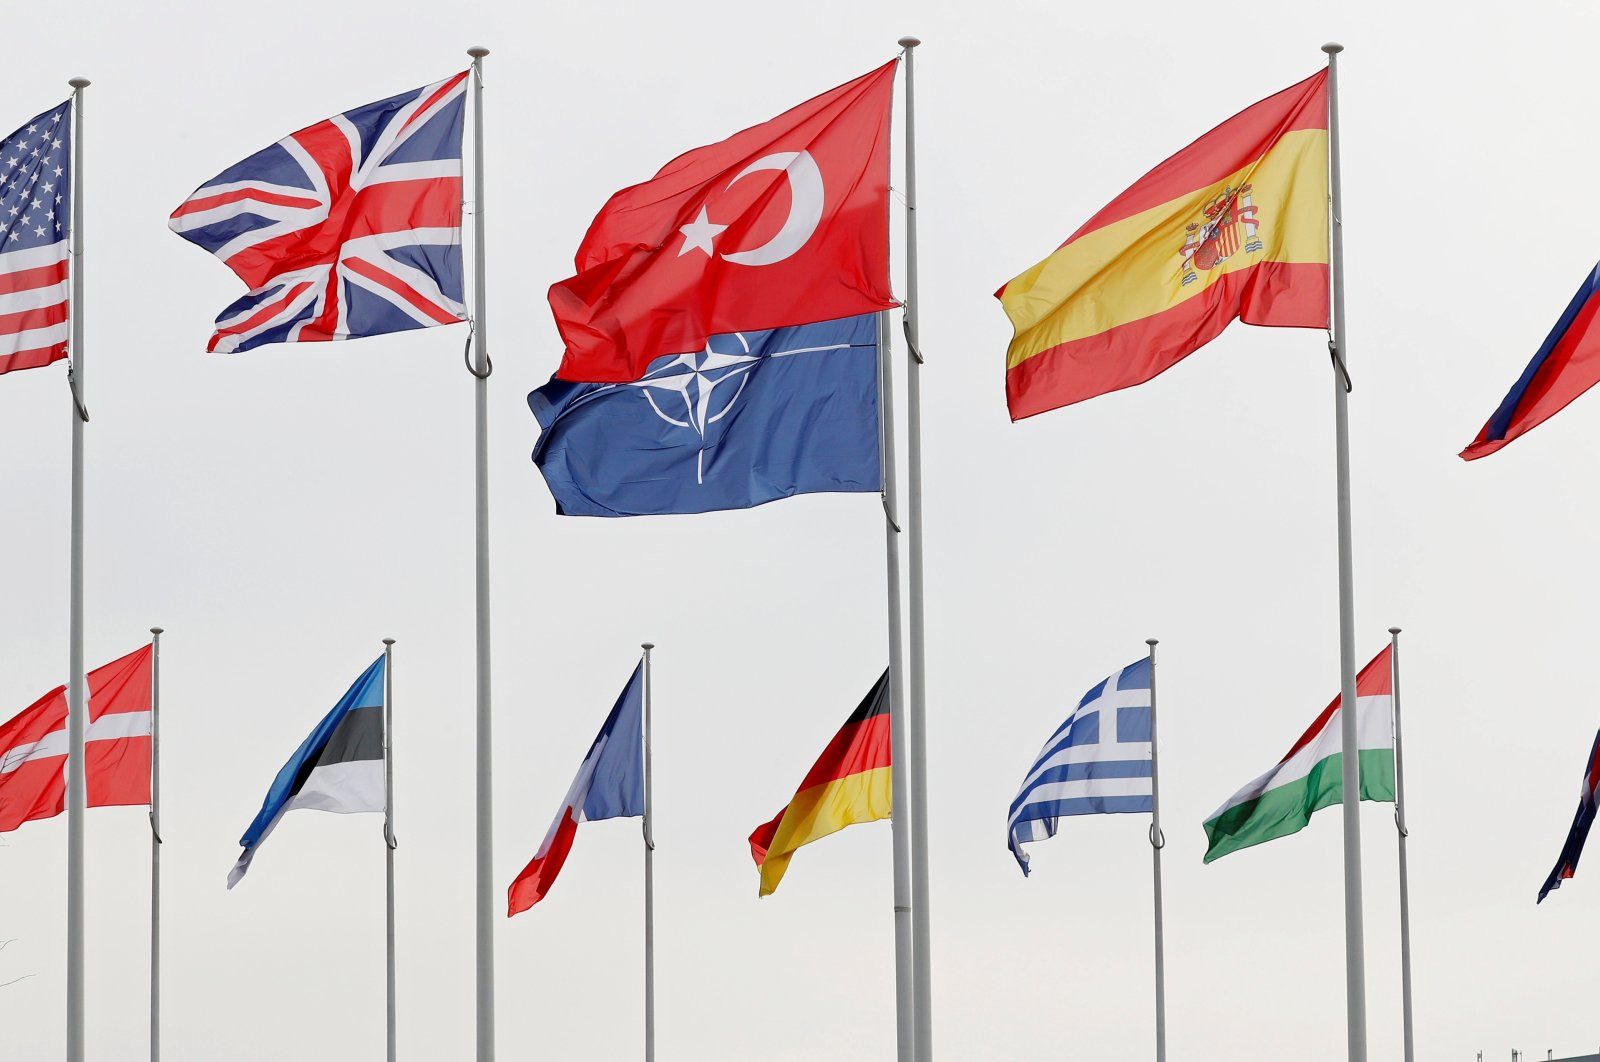 NATO member flags flutter at the alliance's headquarters in Brussels, Belgium, Feb. 28, 2020. (Reuters Photo)